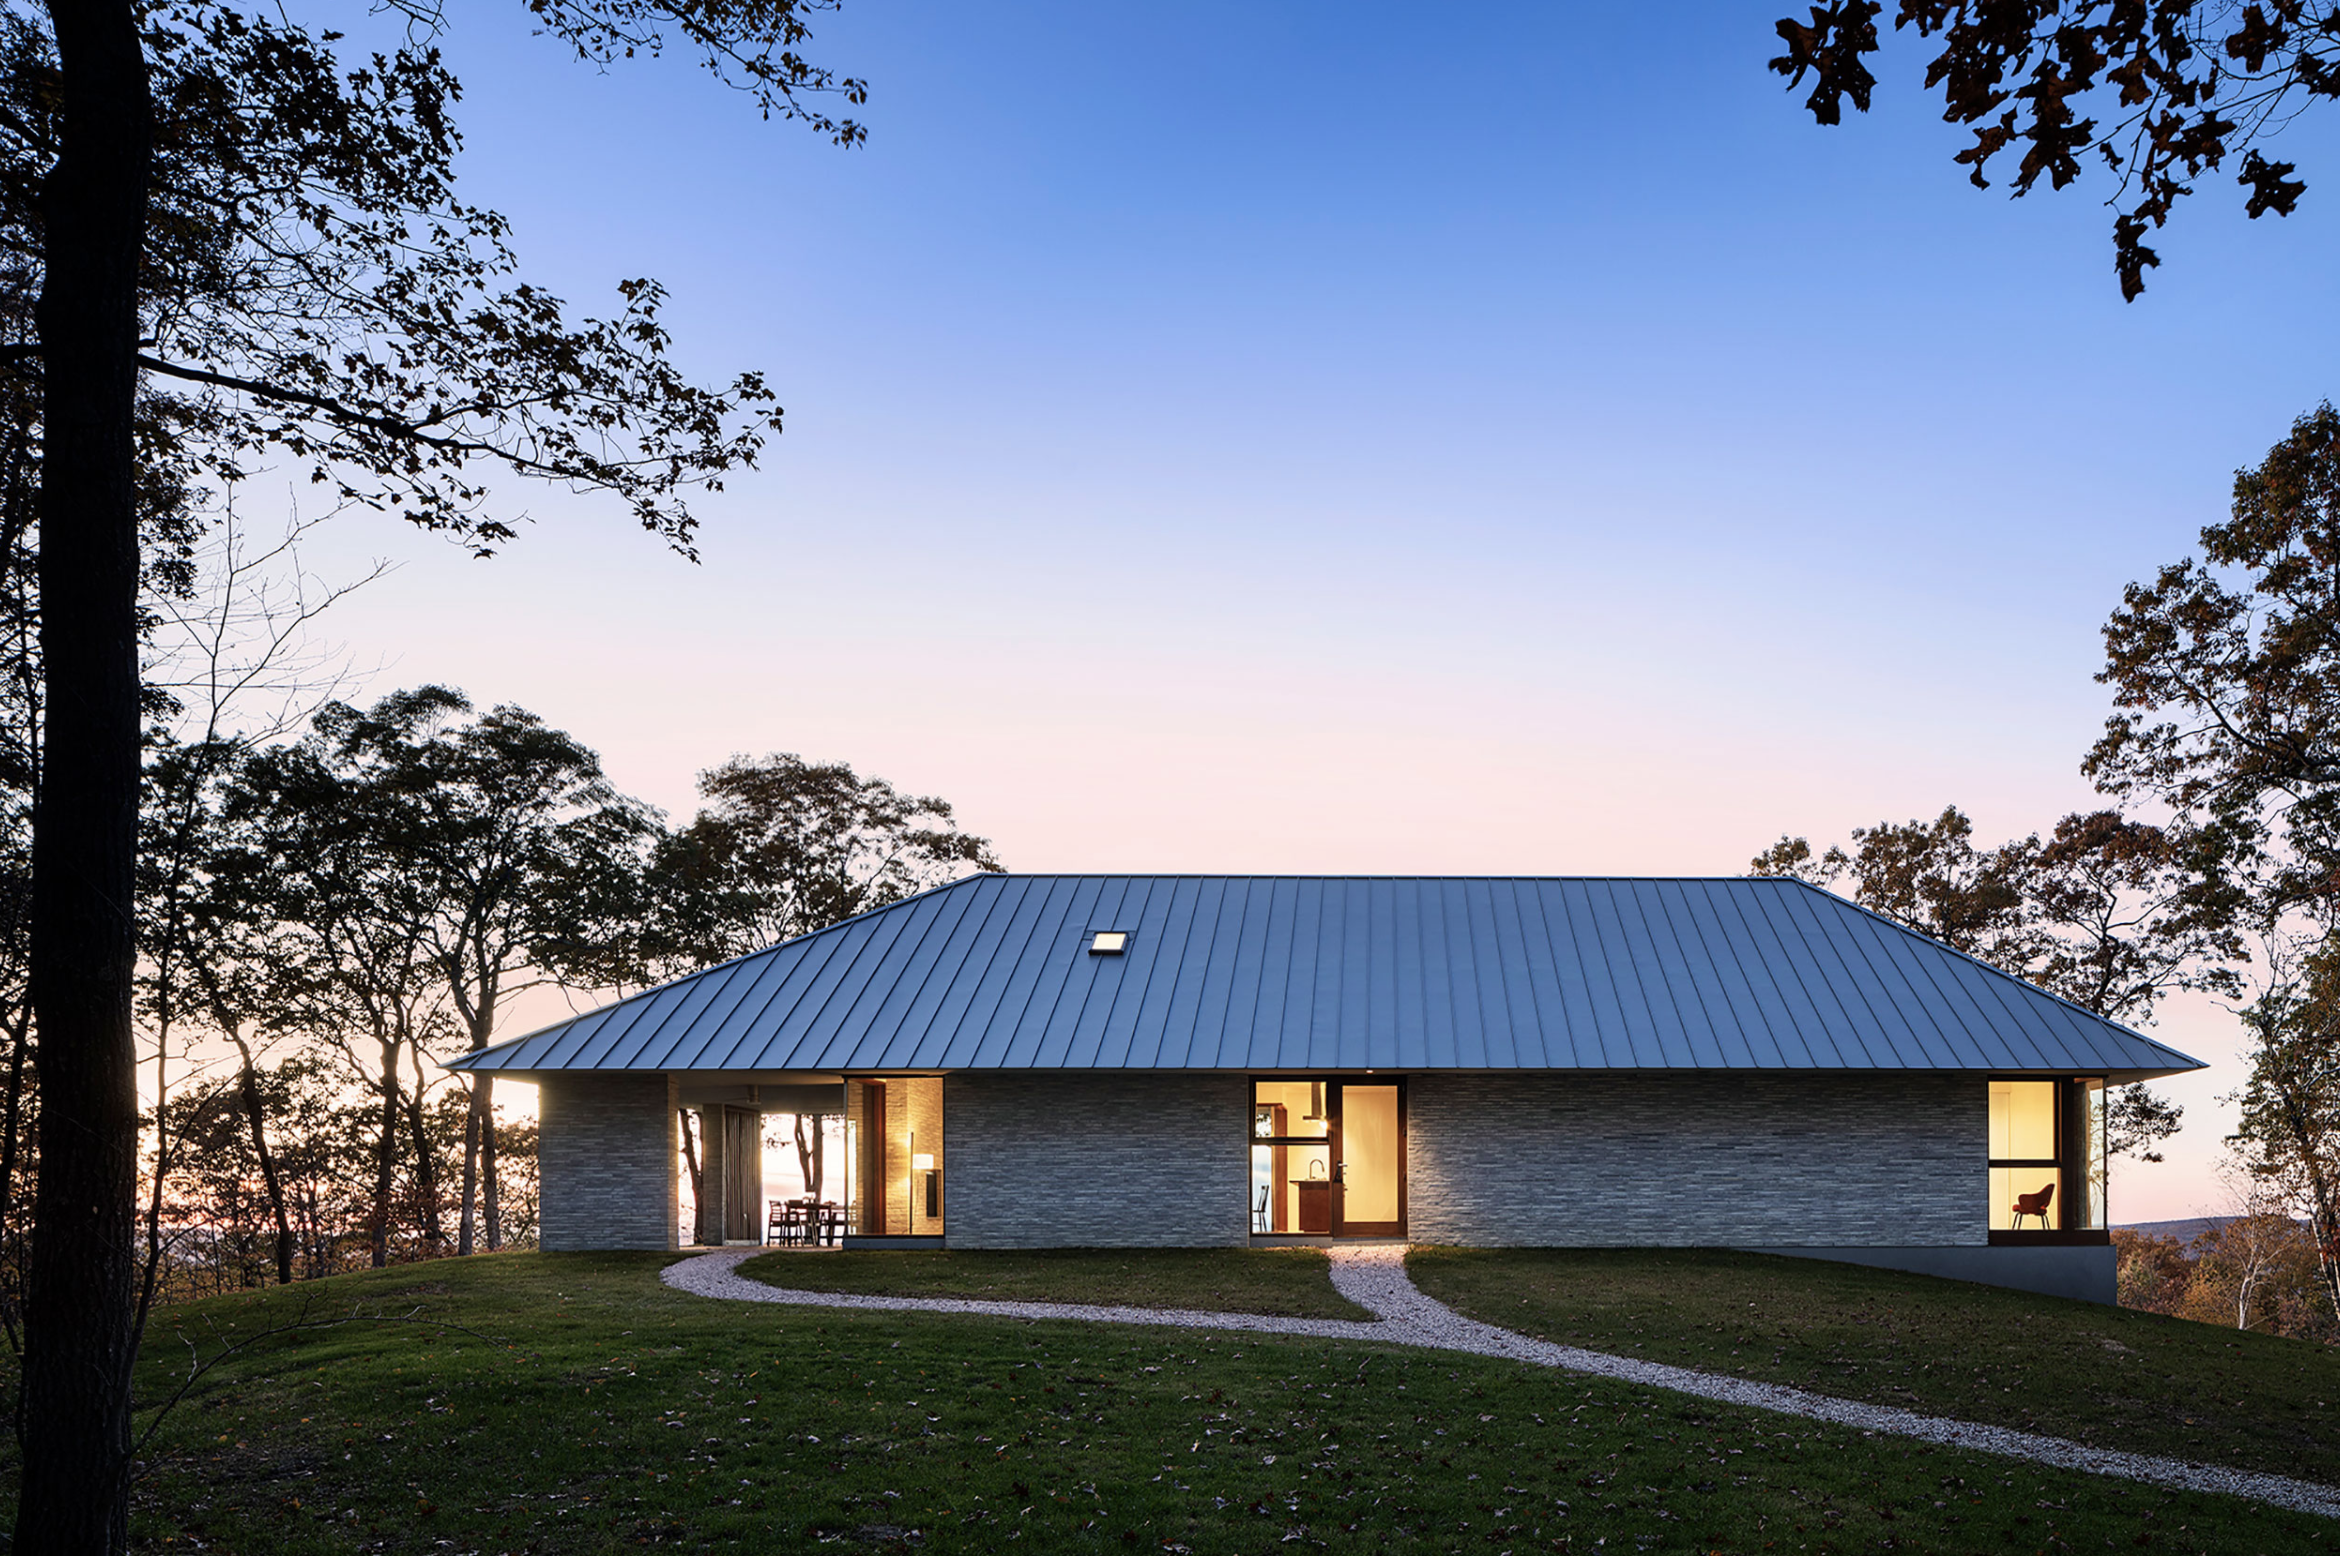 Mount Mauwen House by Paul Schulhof, AIA, in South Kent, CT. Photo: Michael Moran.